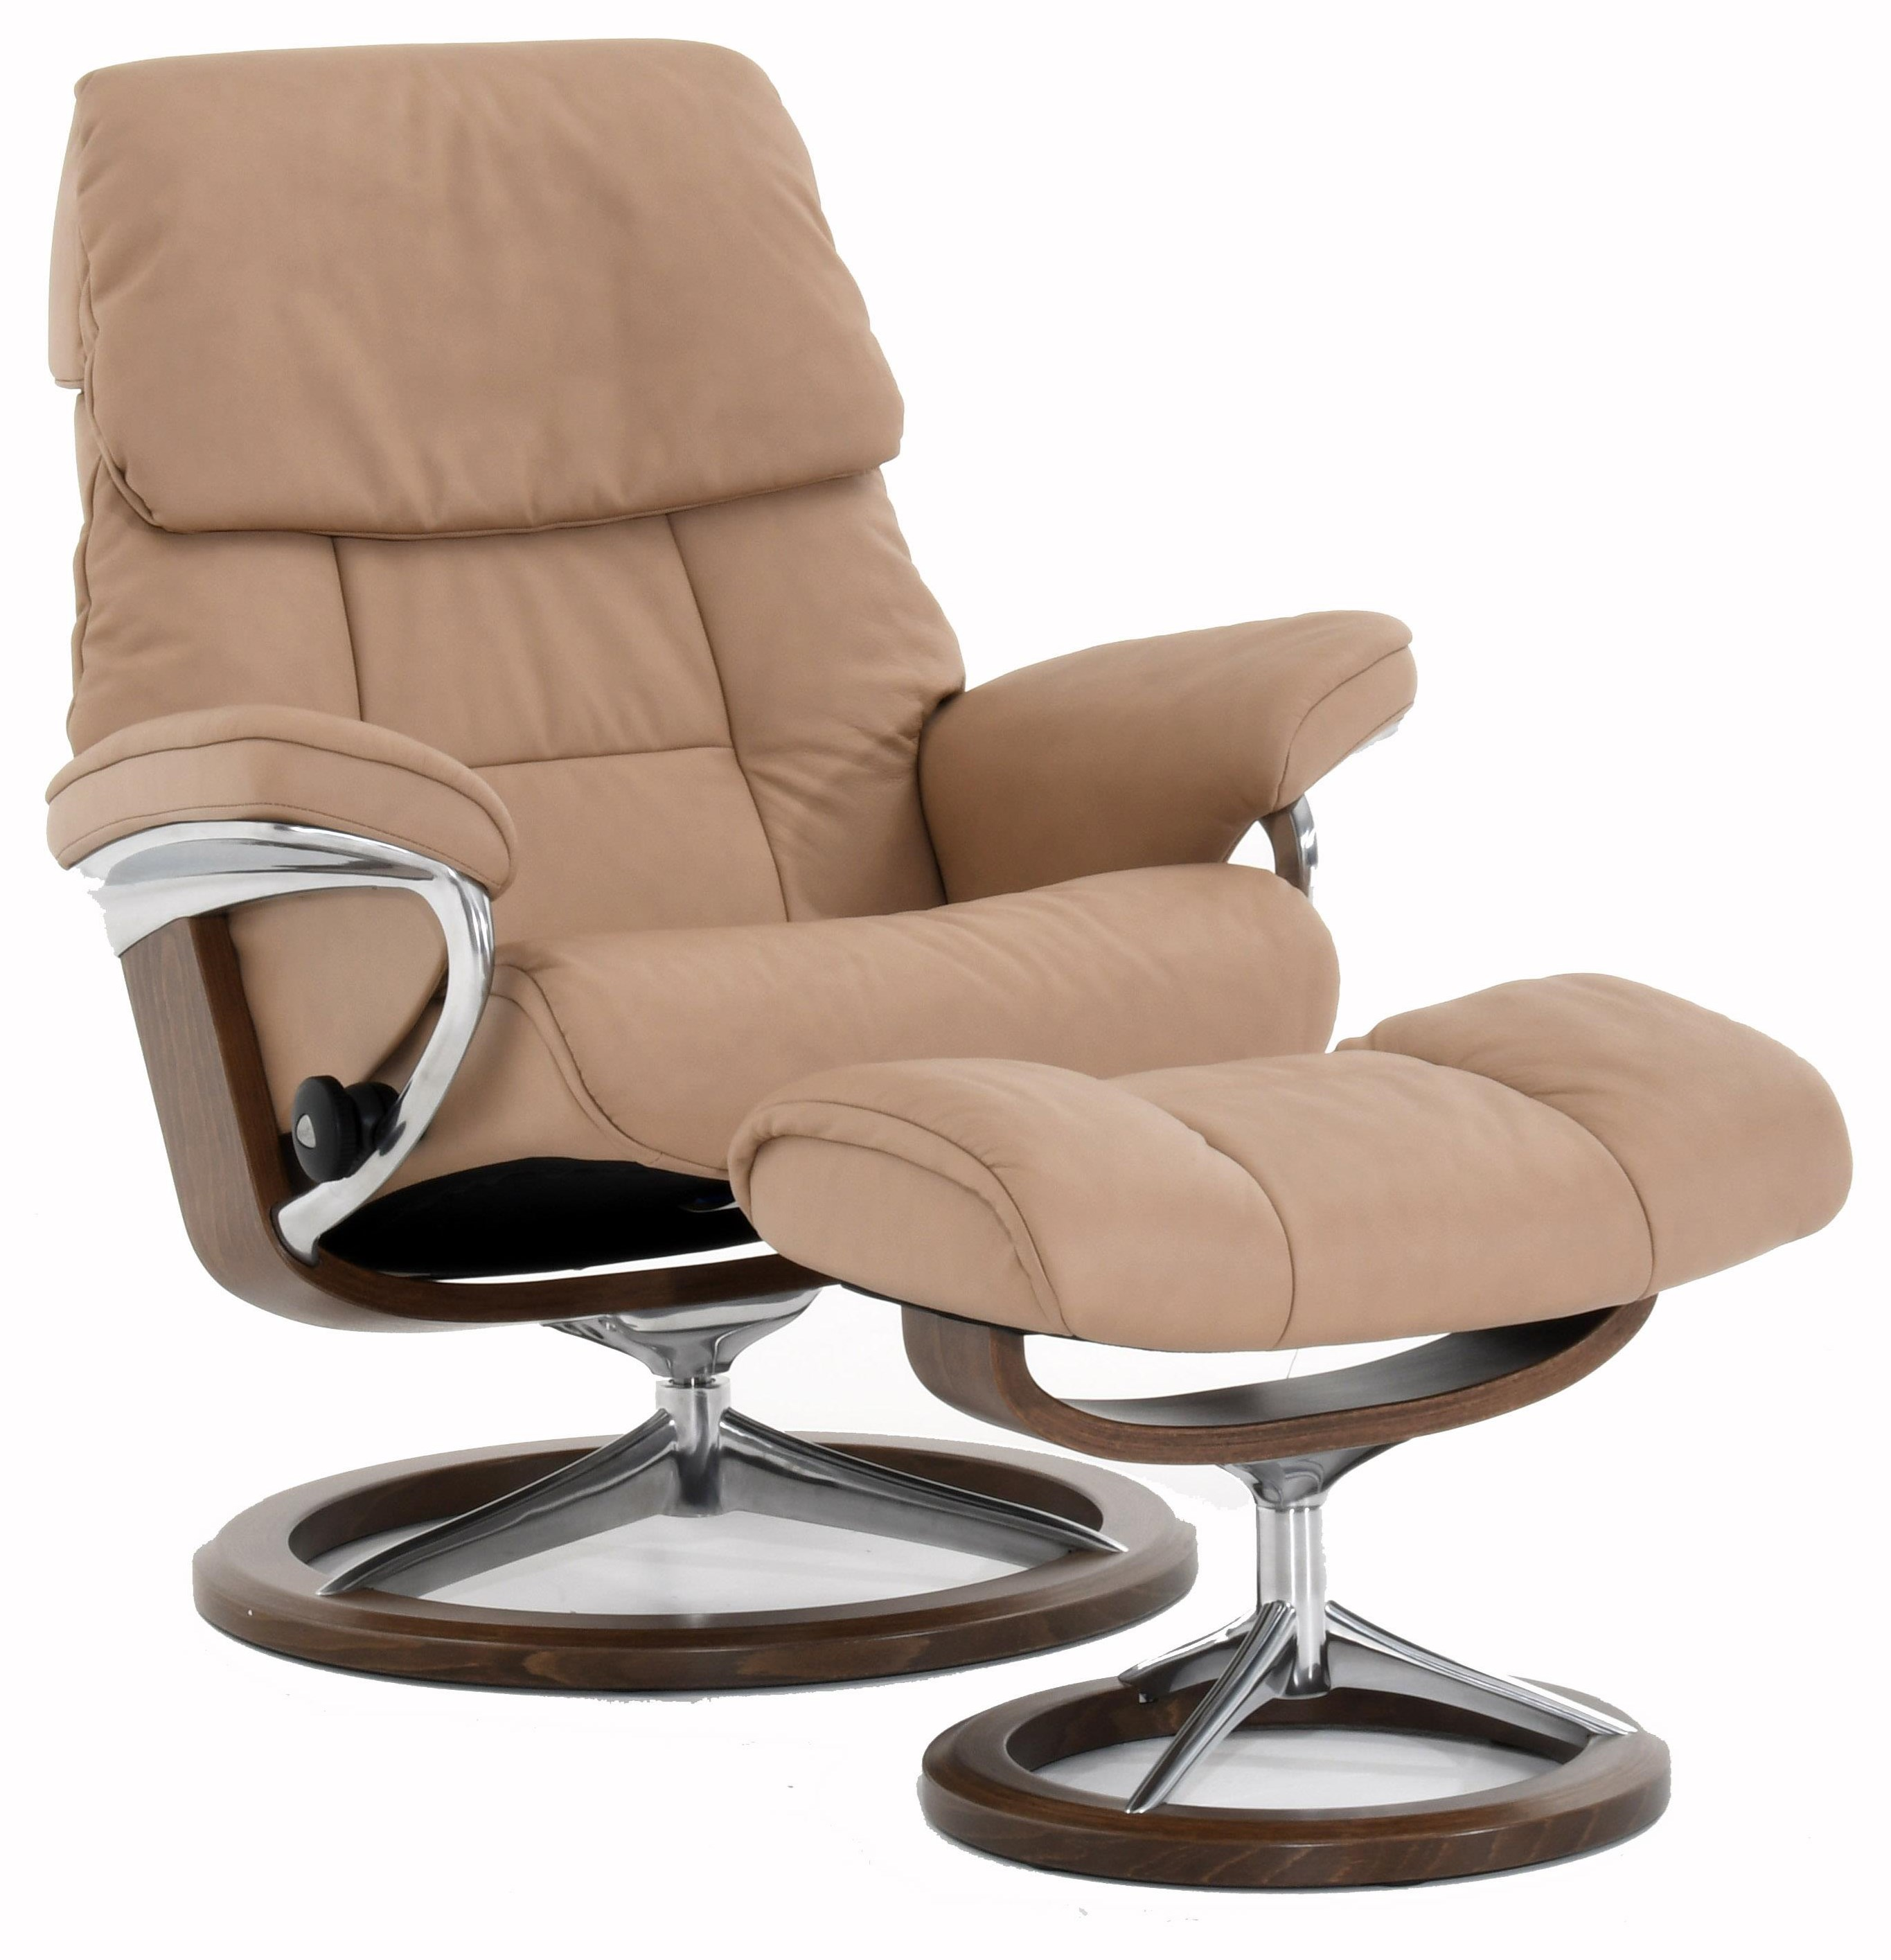 Stressless Ruby Medium Signature Chair by Stressless at Baer's Furniture